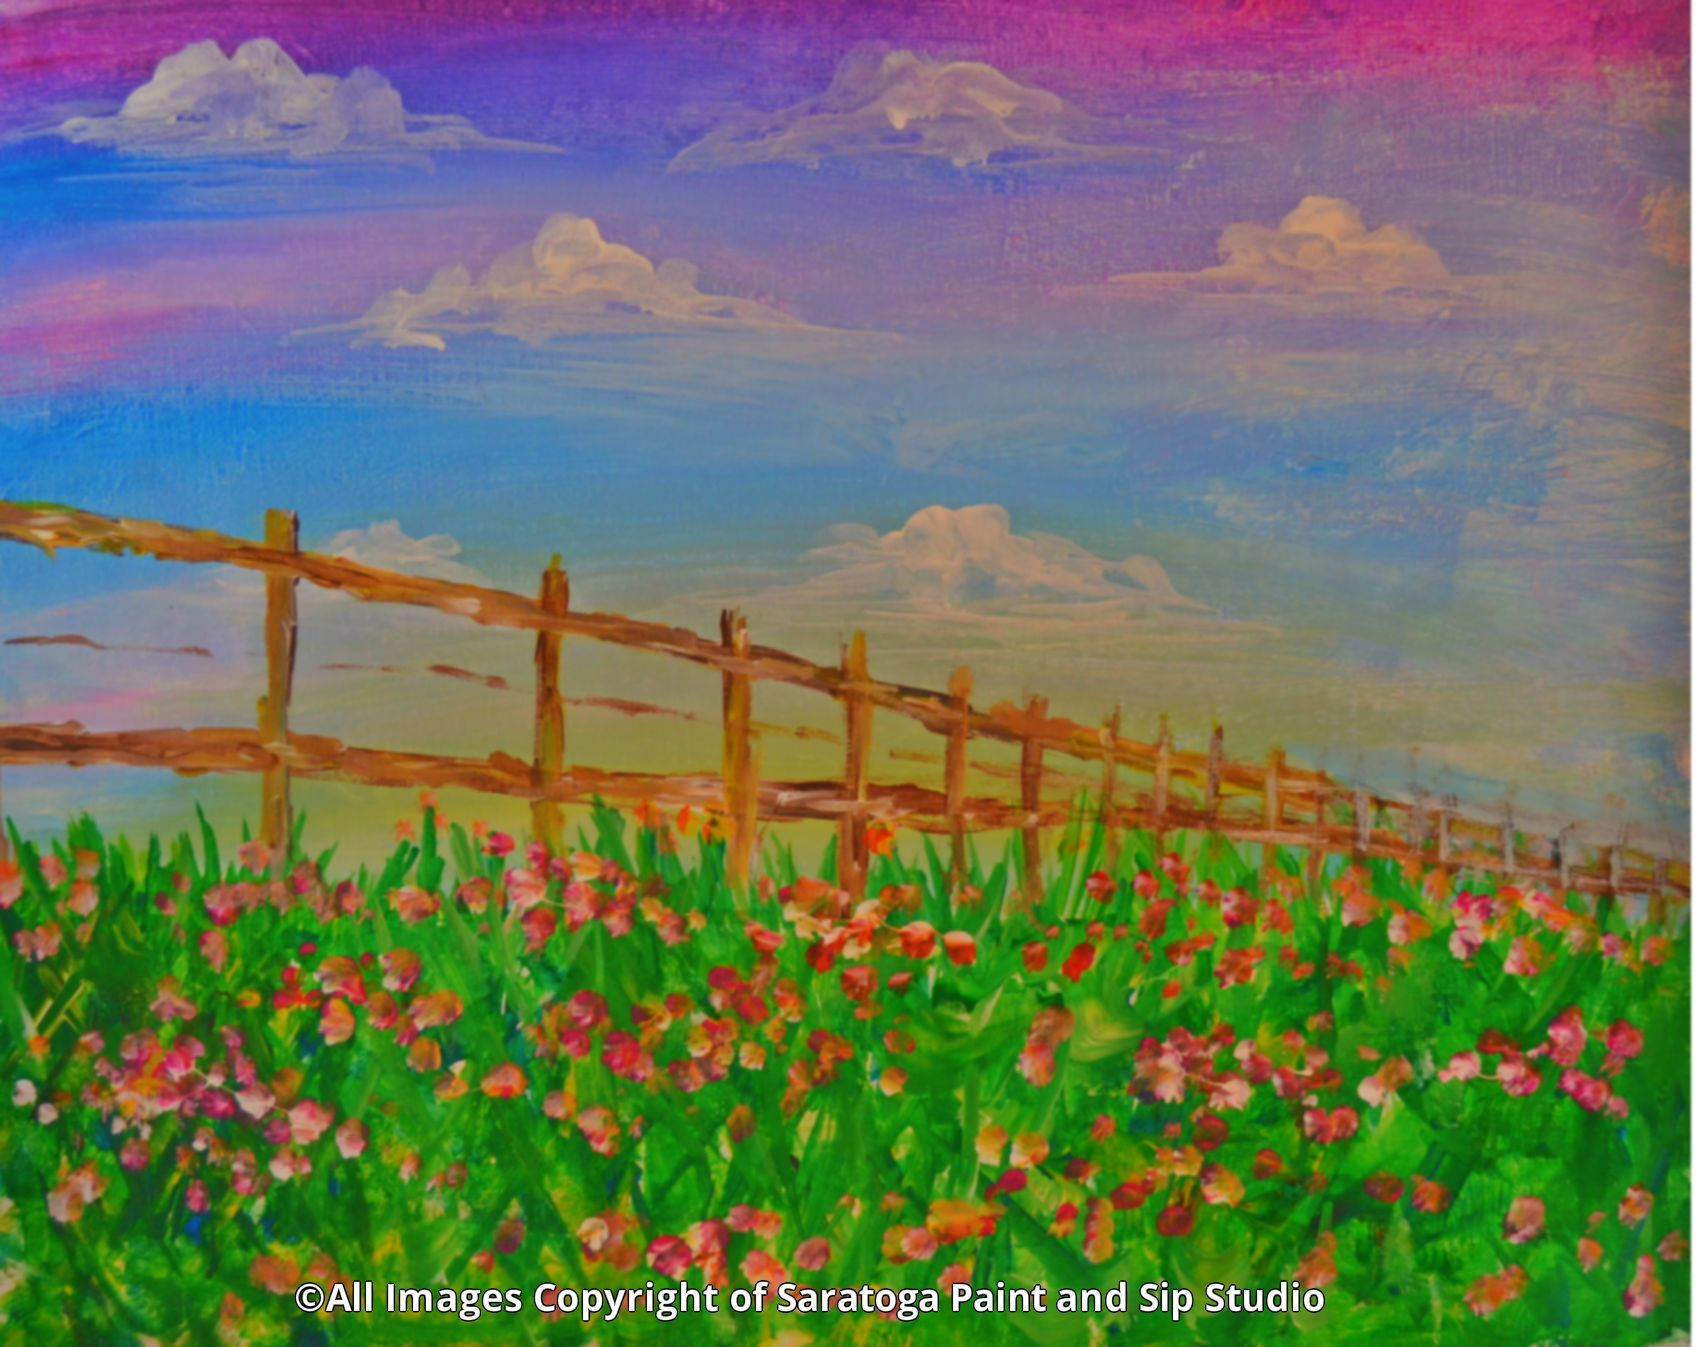 Fence of flowers at saratoga paint sip studio with